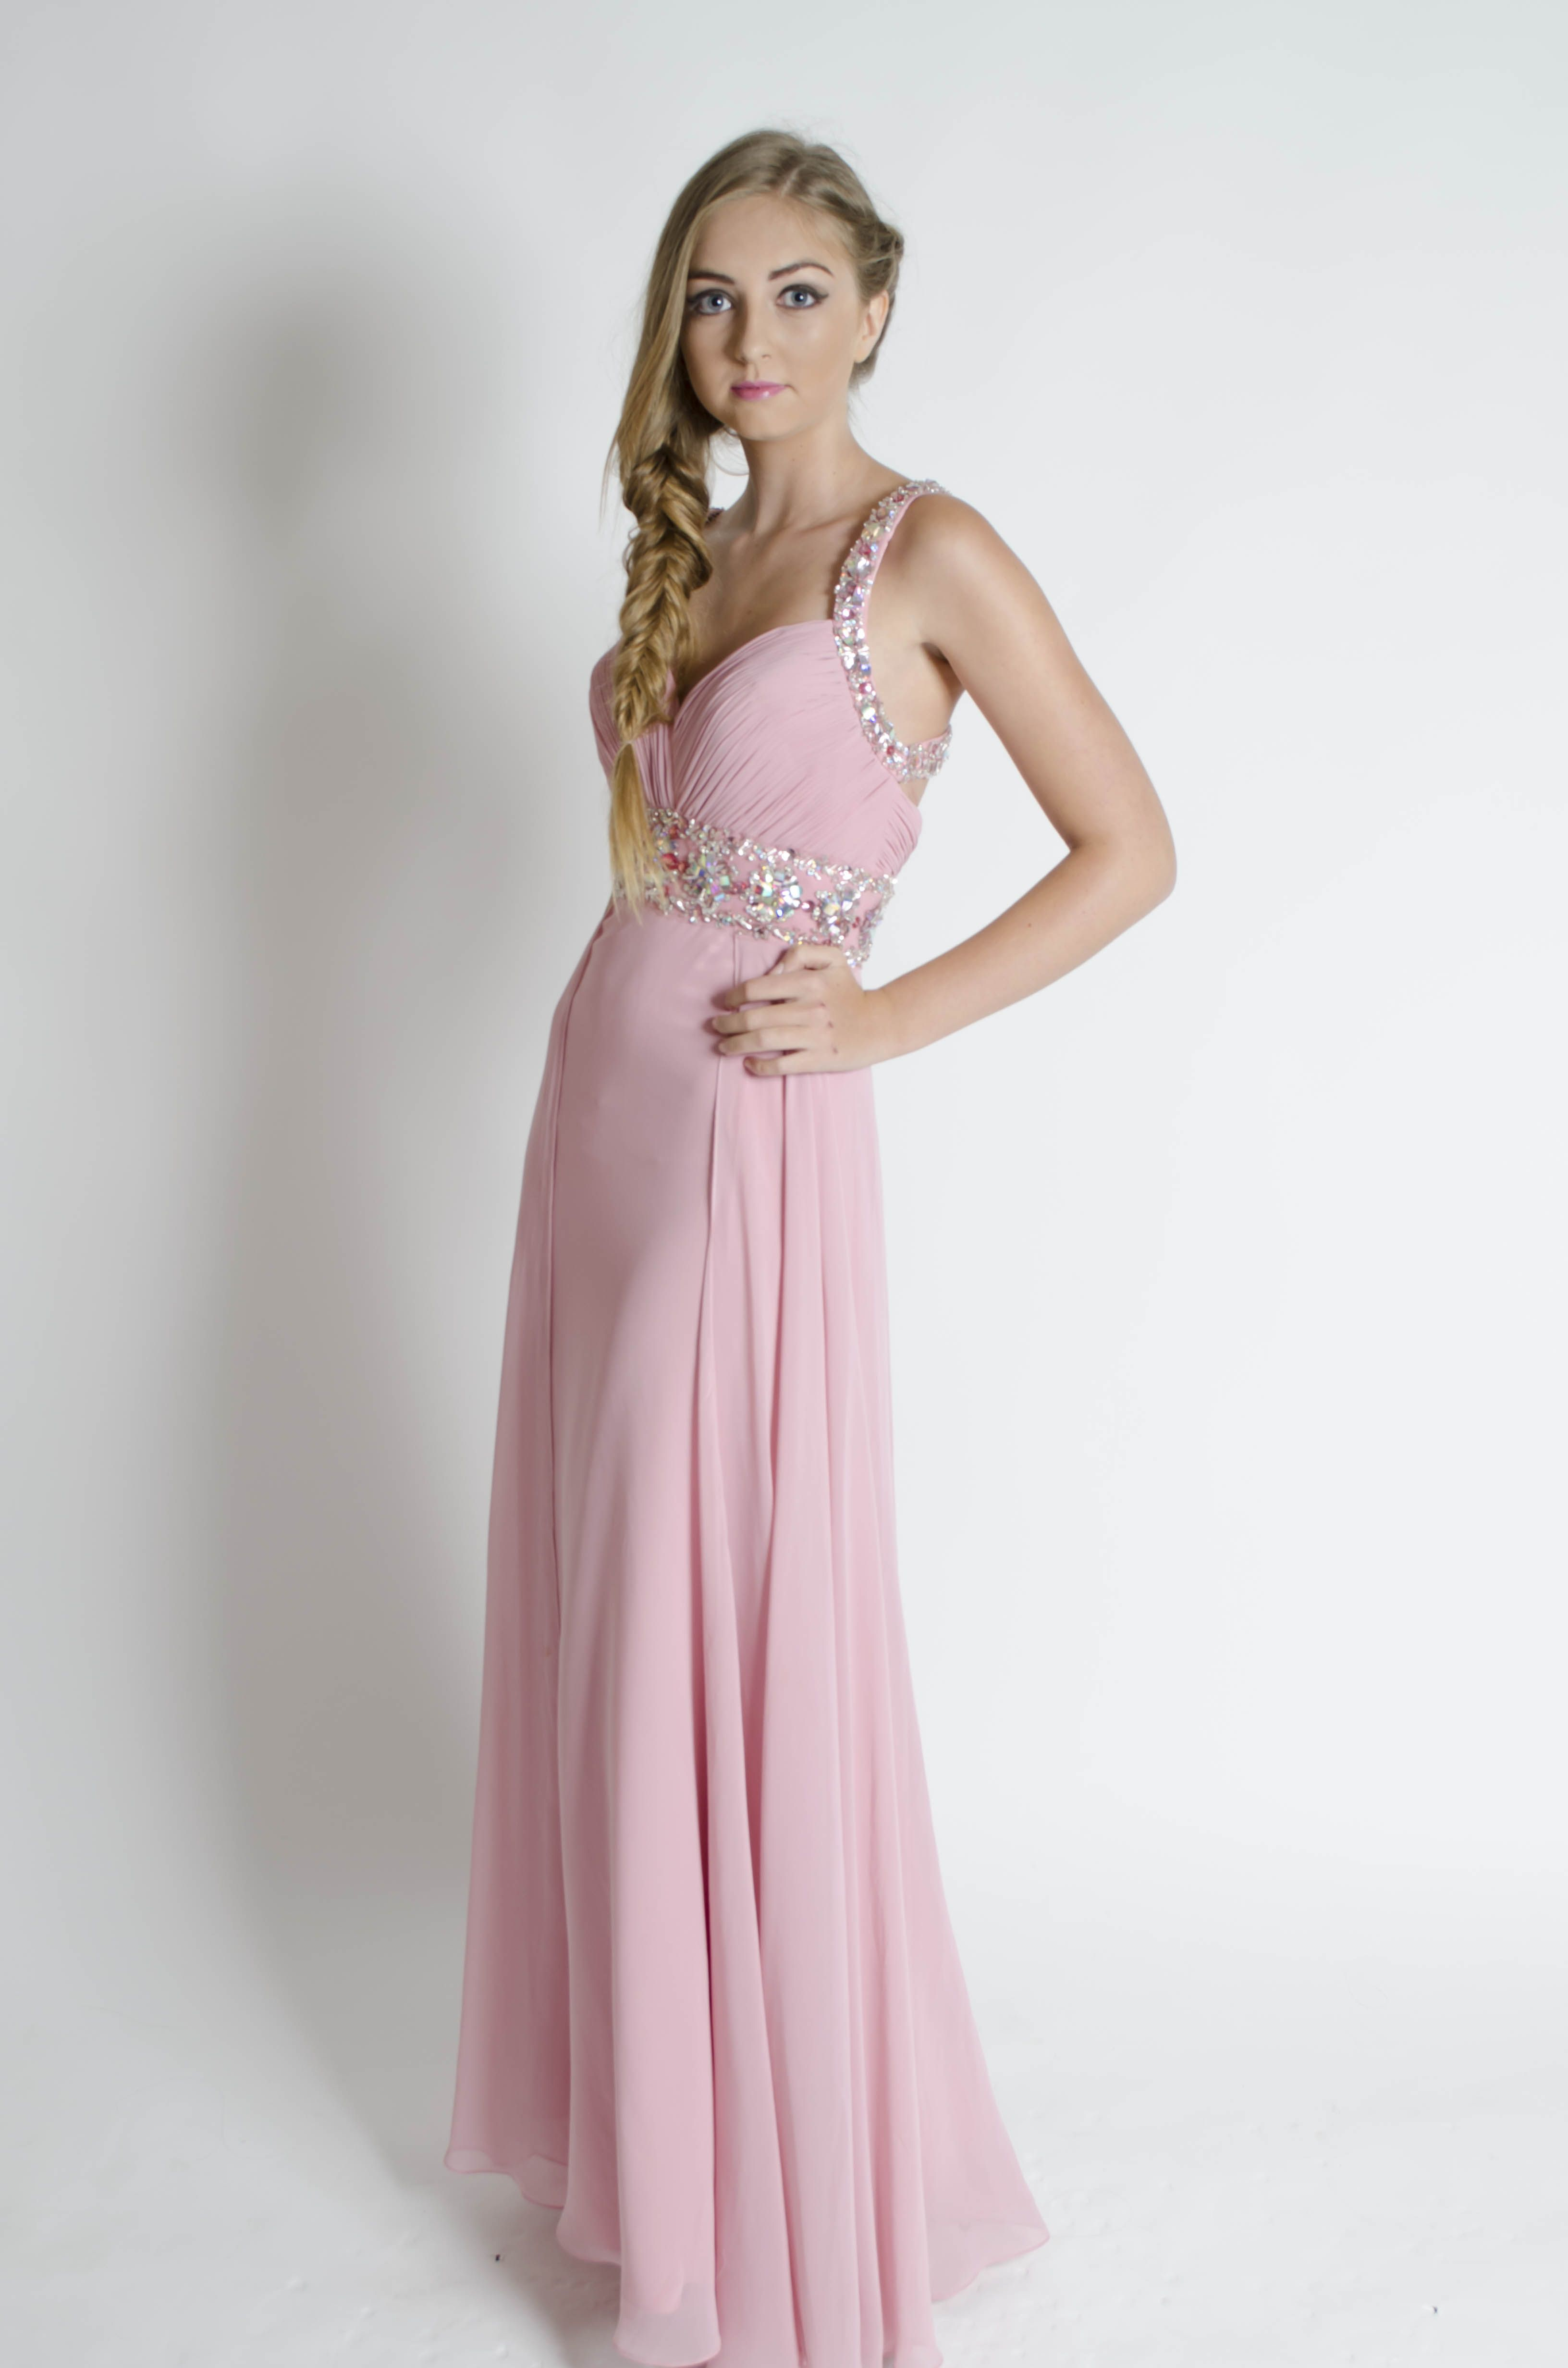 Prom donut leave it too late prom dresses pinterest prom